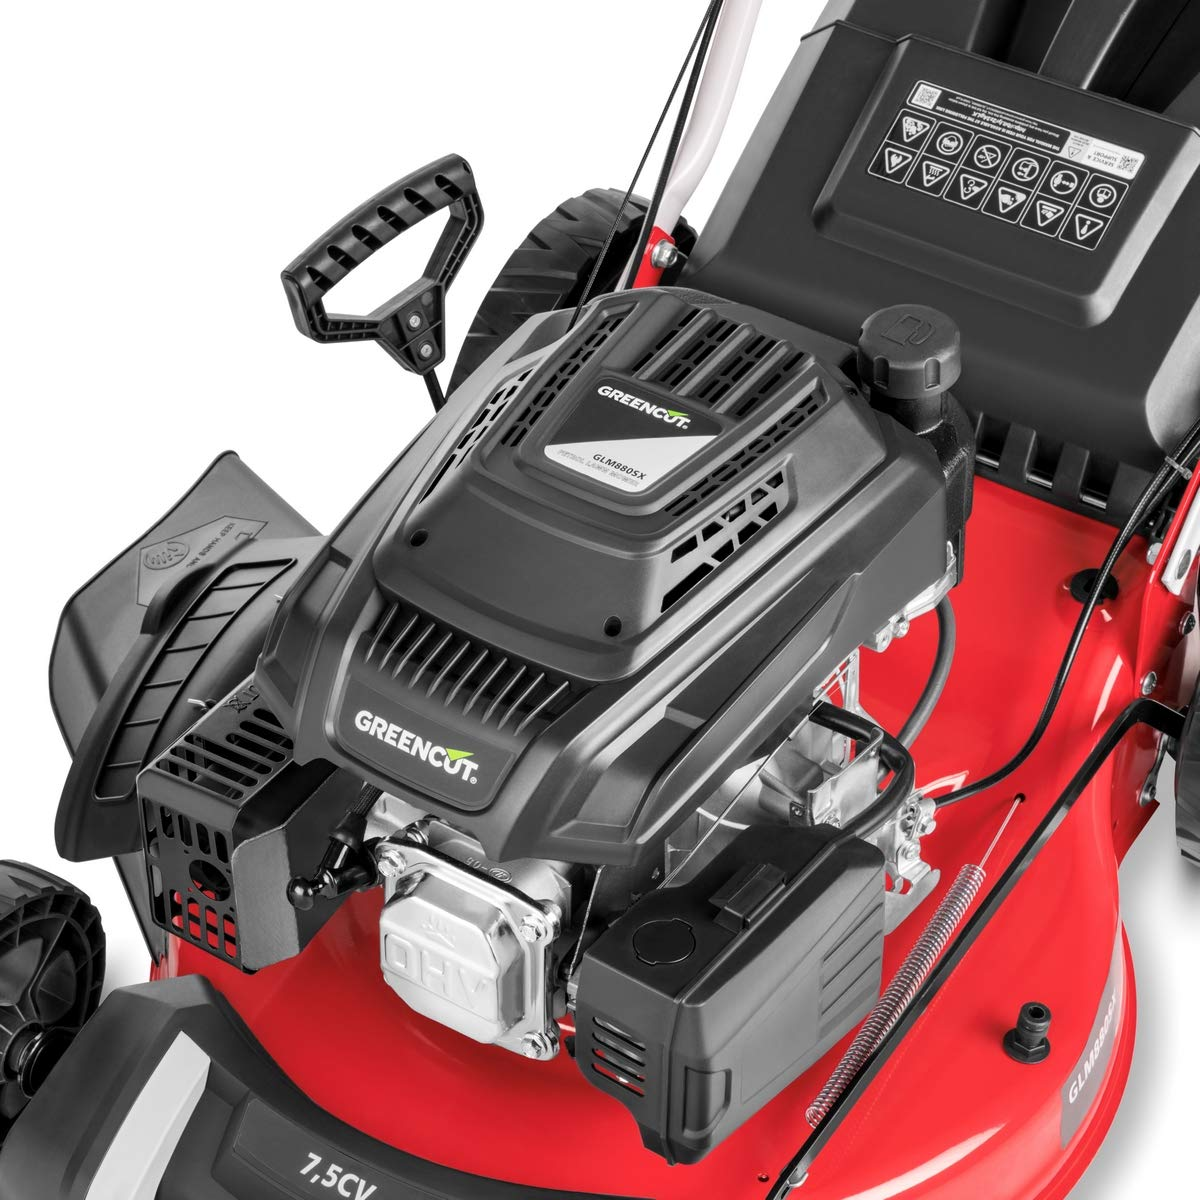 Greencut GLM880SX - Cortacésped autopropulsado con motor de gasolina de 218cc y 7,5cv y arranque manual Easy-Start, con un ancho de corte de 504mm (o ...